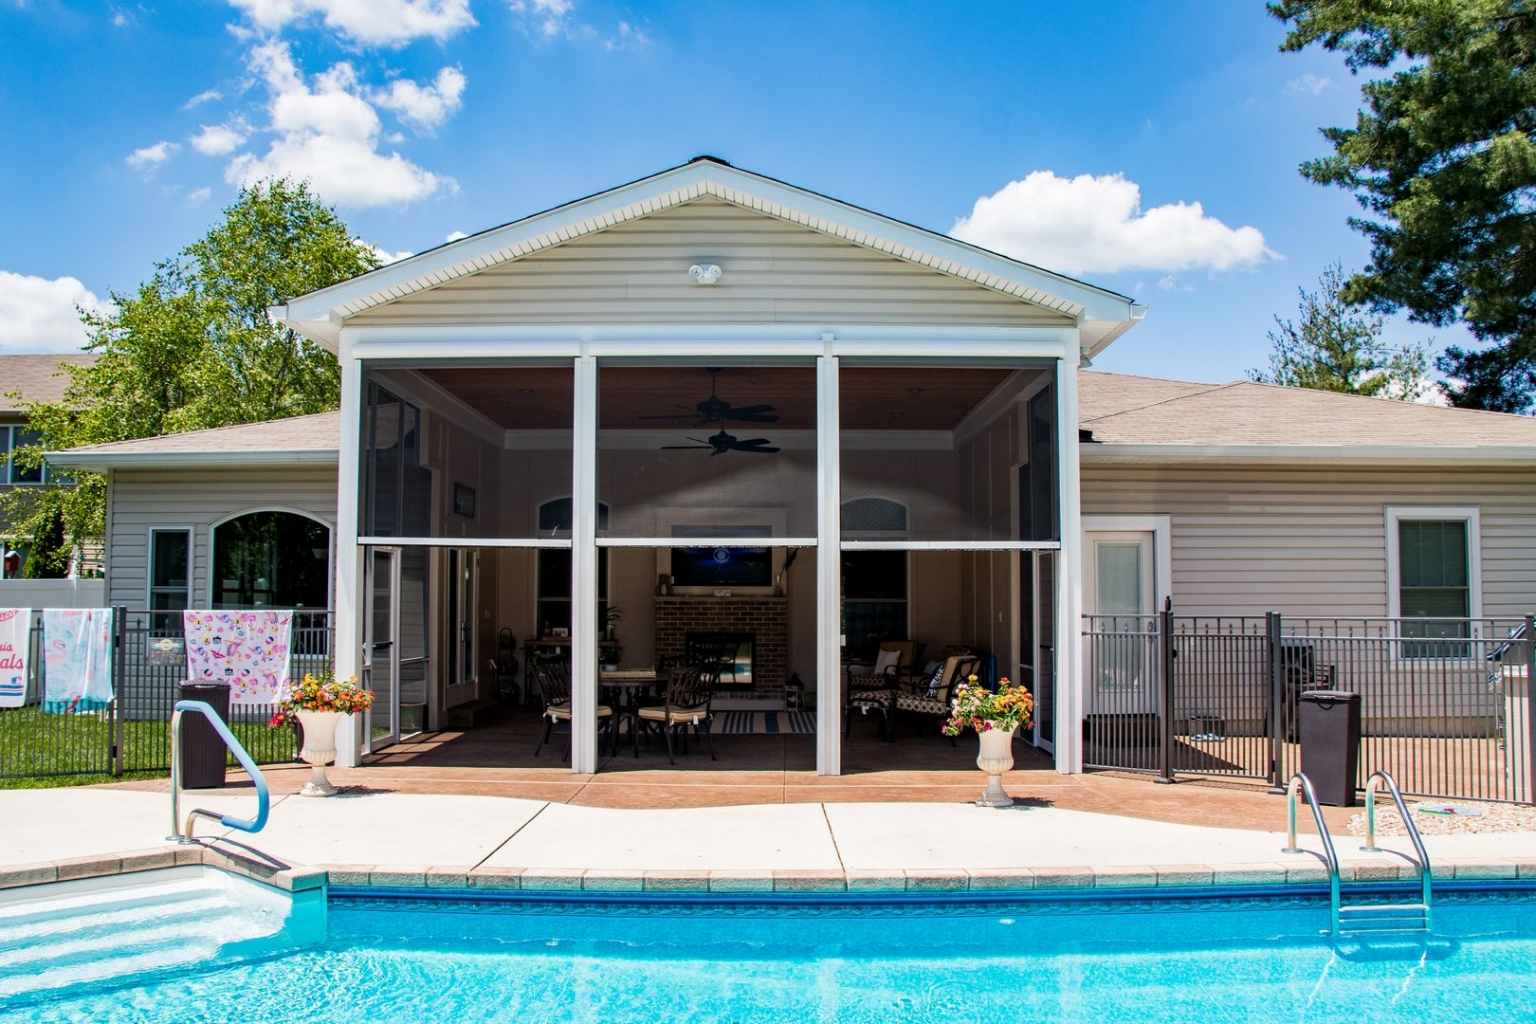 Retractable screen by a pool